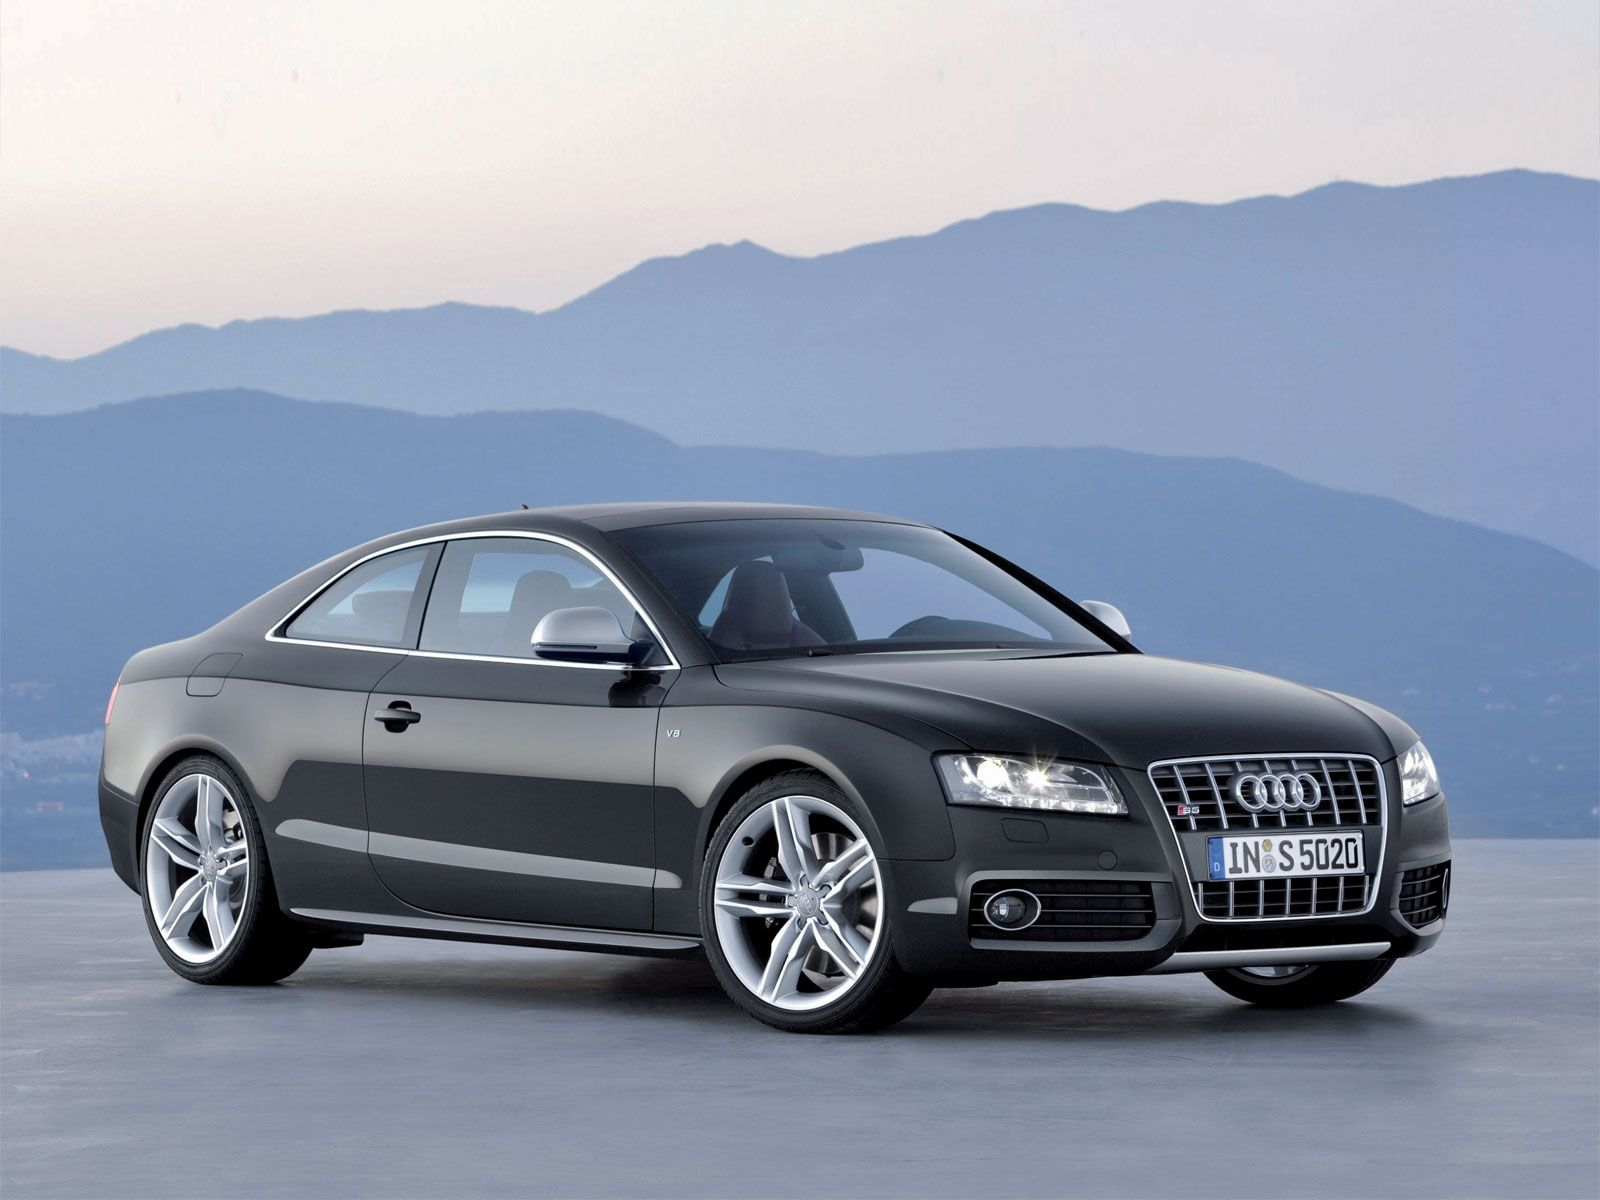 Audi S5 Hd Wallpapers Hd Car Wallpapers Audi S5 Audi A5 Audi A5 Coupe